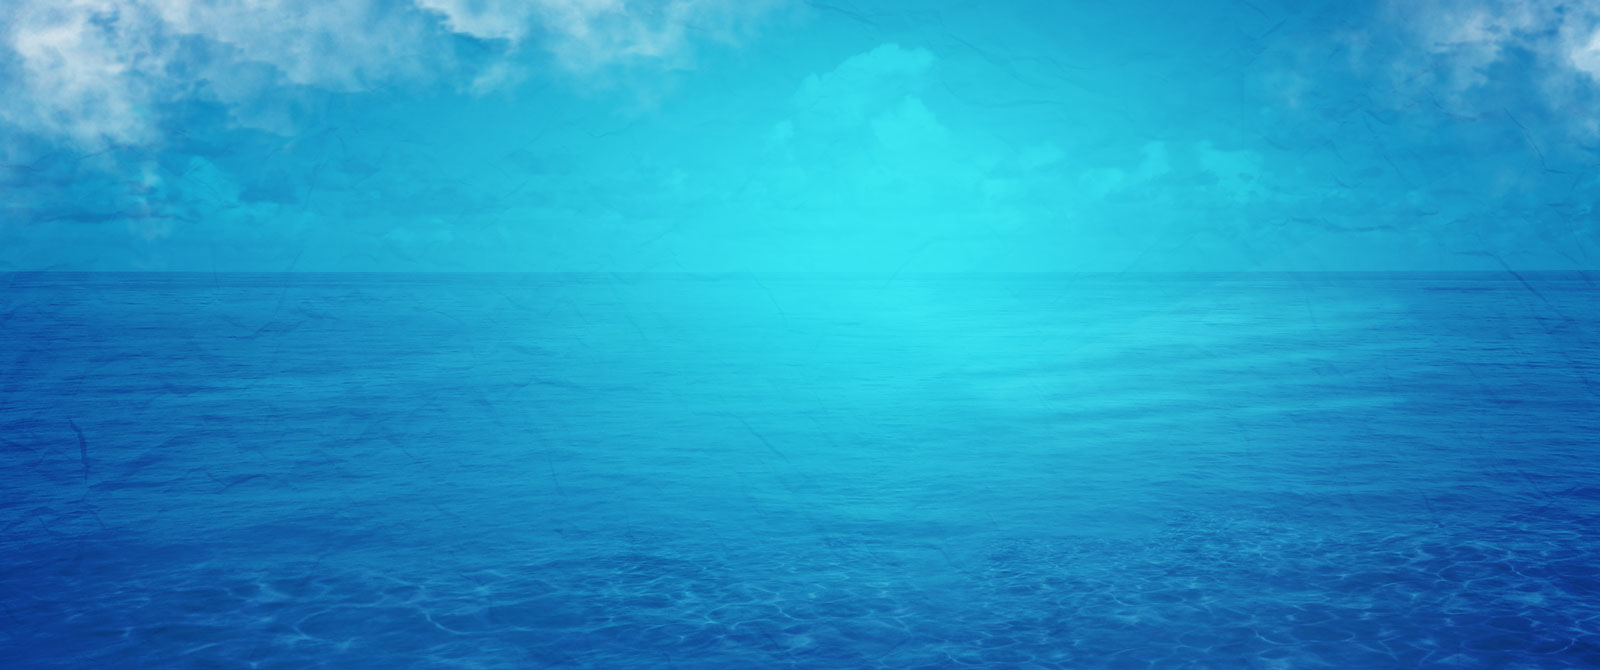 bg-blue-water